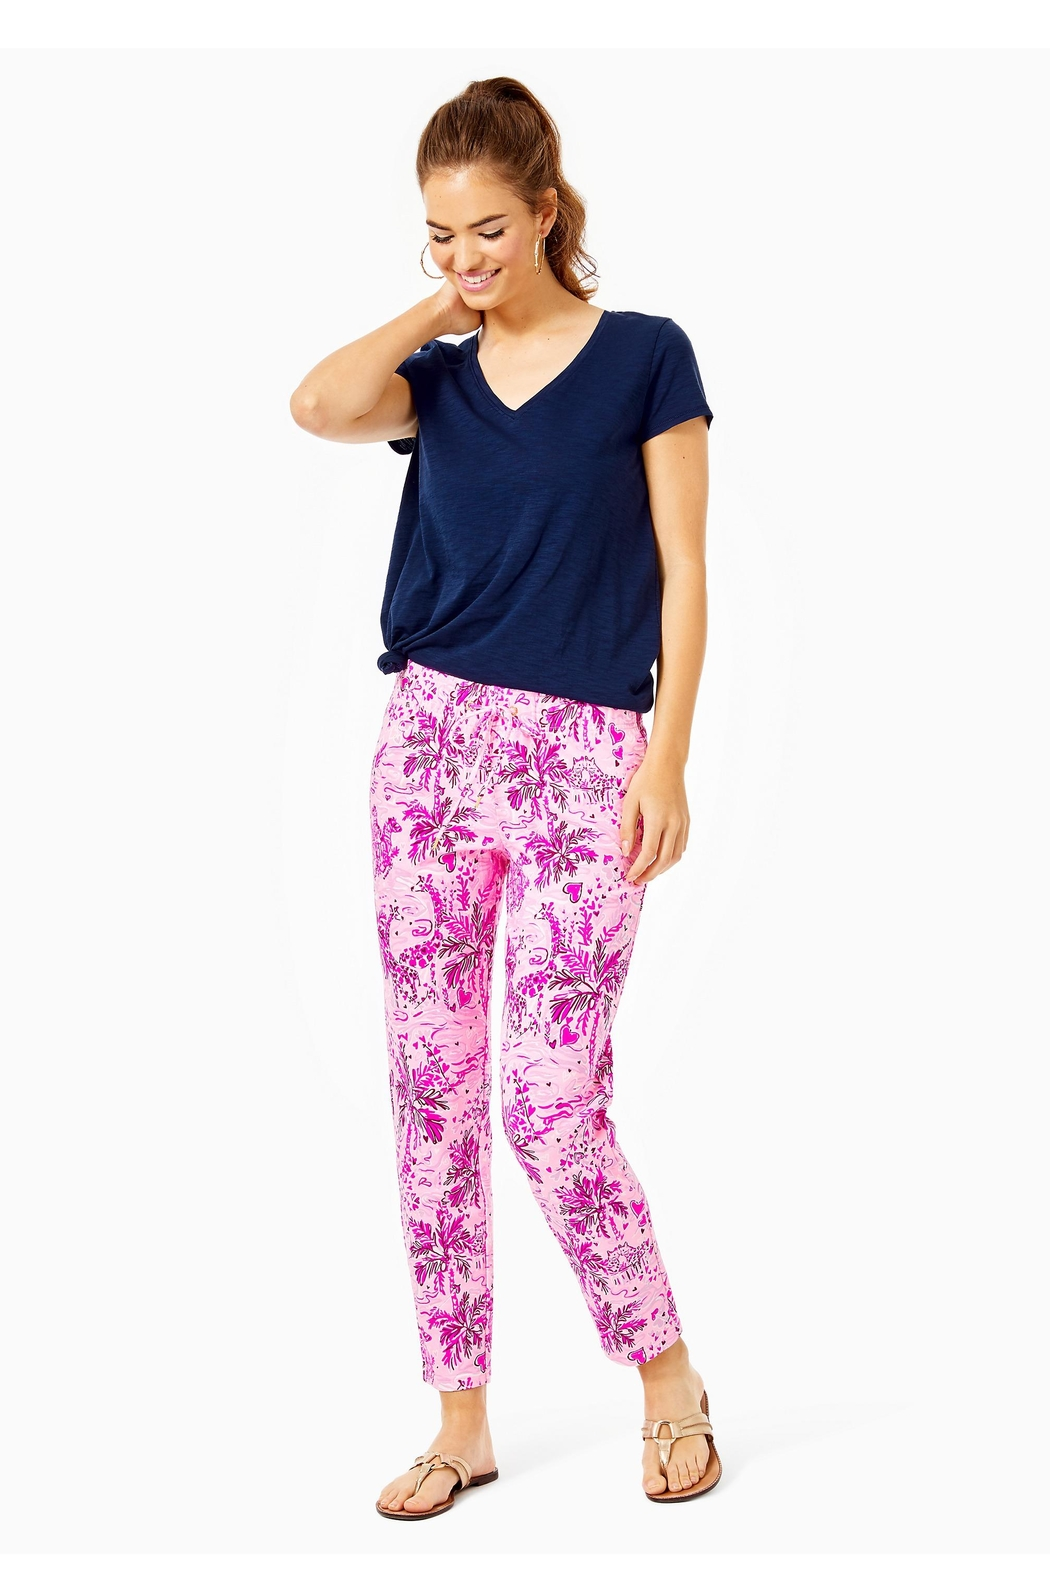 Lilly Pulitzer Emora Knit Pant - Front Cropped Image